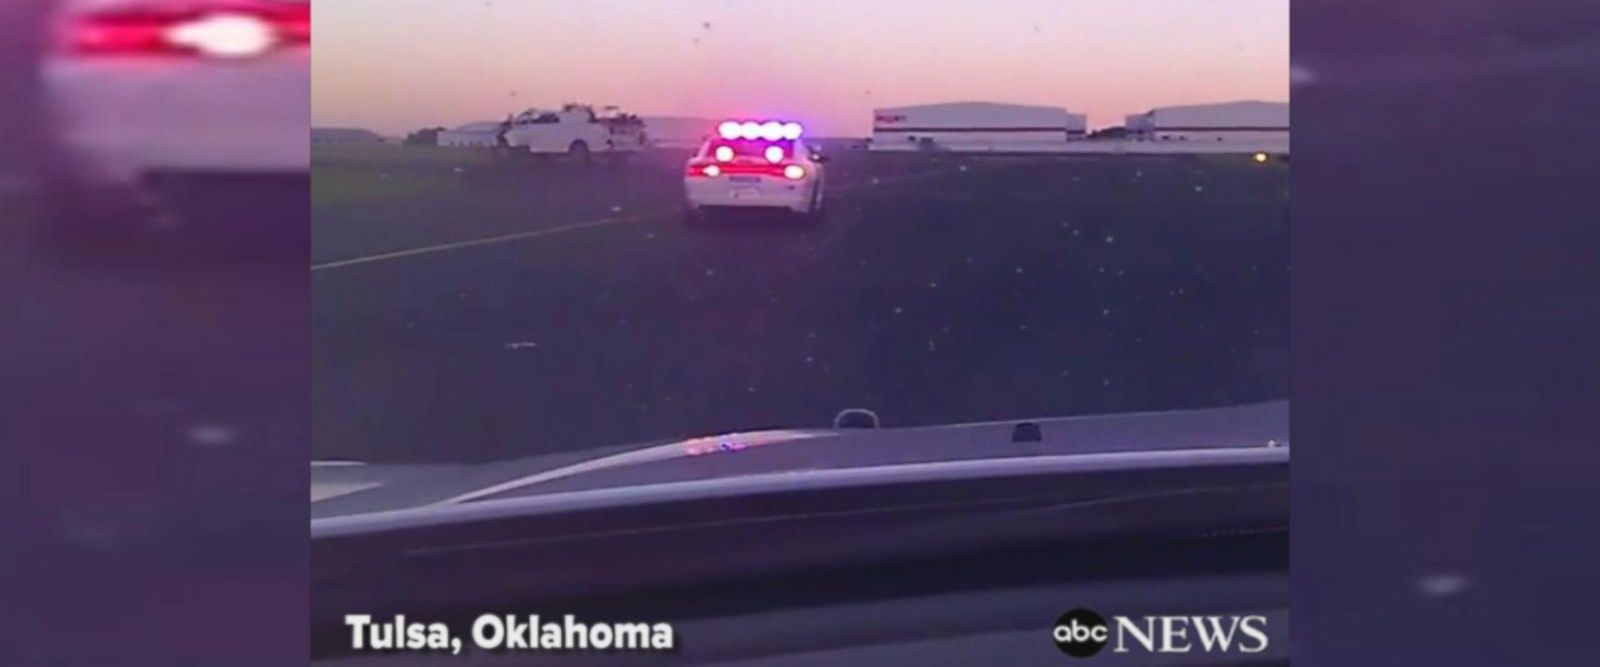 VIDEO: Suspect leads police pursuit across Tulsa Airport runway